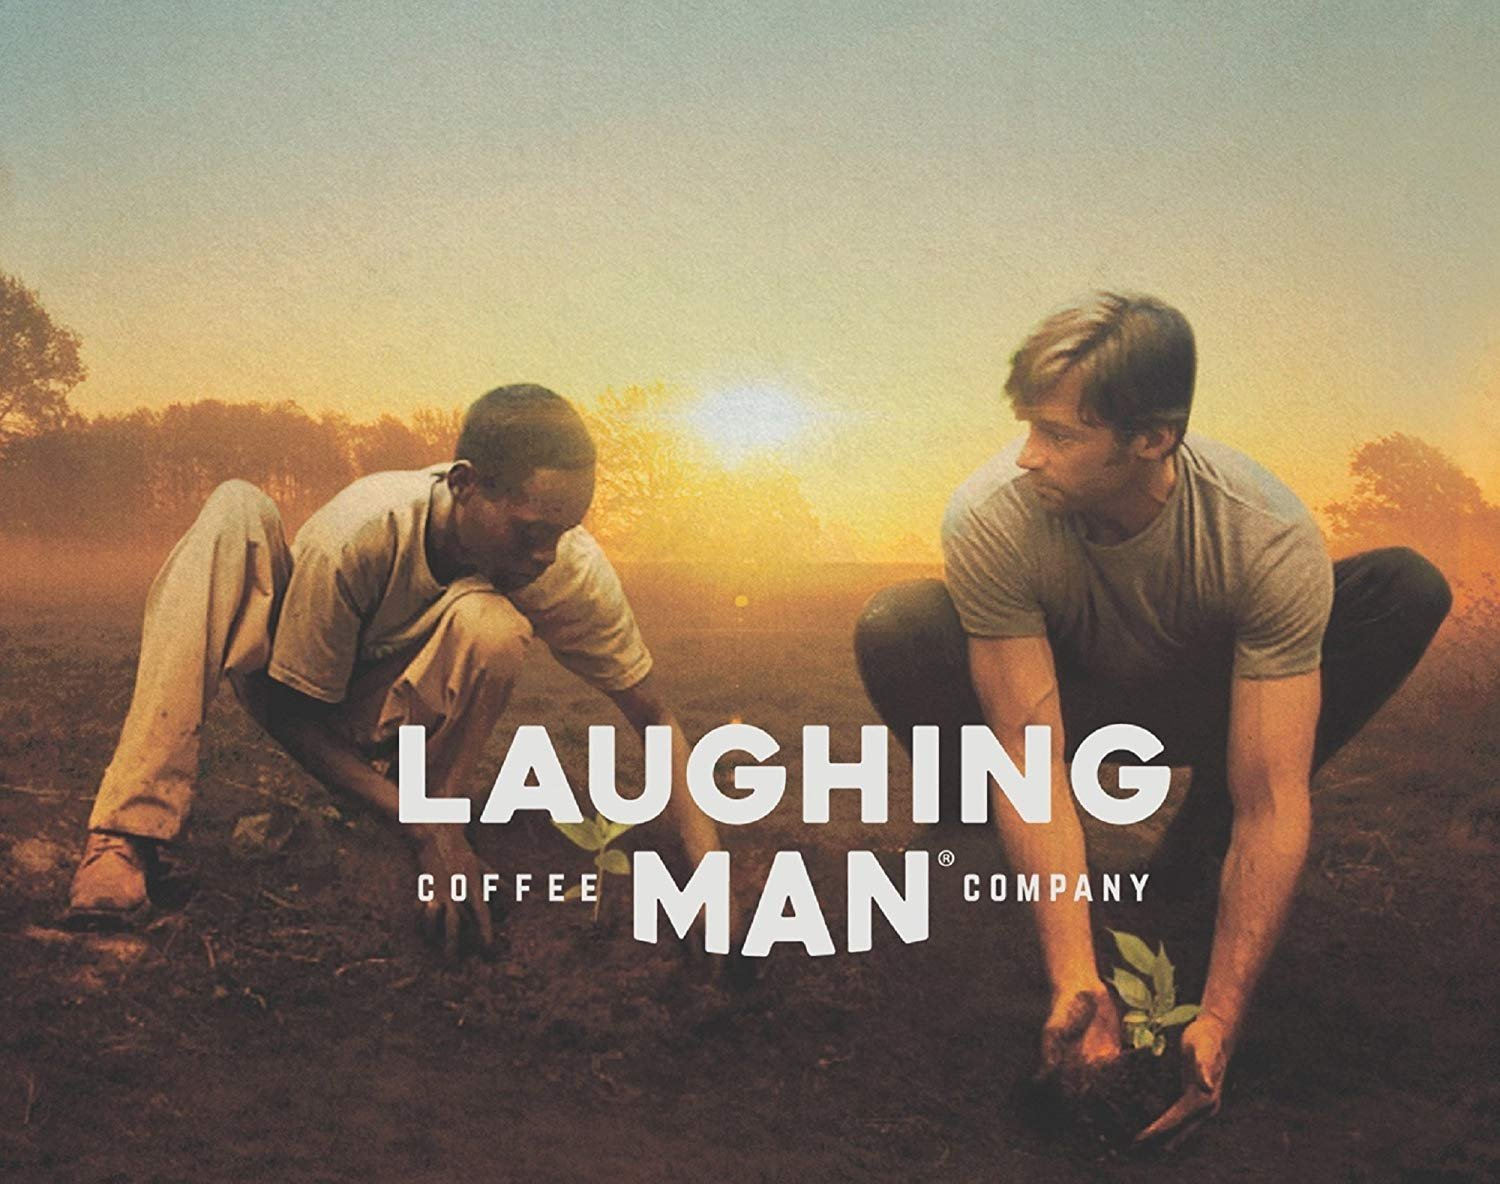 Laughing Man Dukale's Blend Coffee Keurig K-Cups, 96 Count by Laughing Man (Image #1)